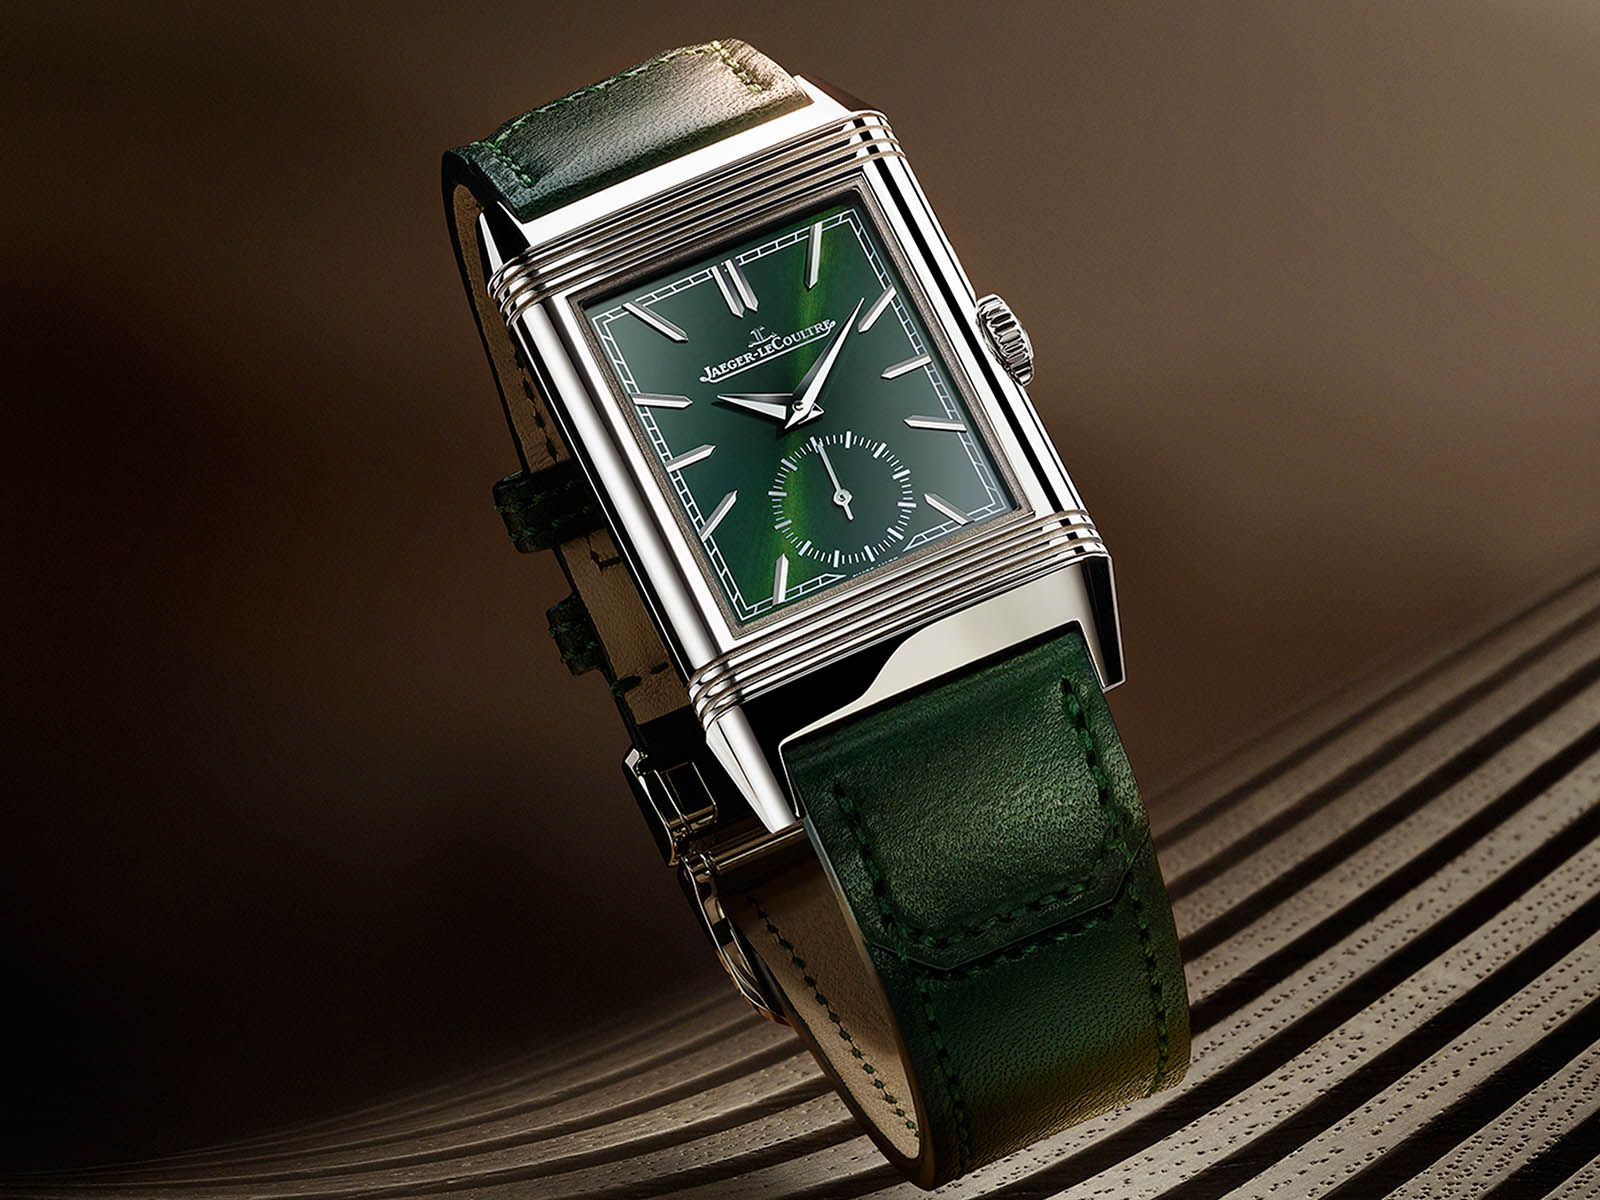 q3978430-jaeger-lecoultre-reverso-tribute-small-seconds-green-dial-2.jpg